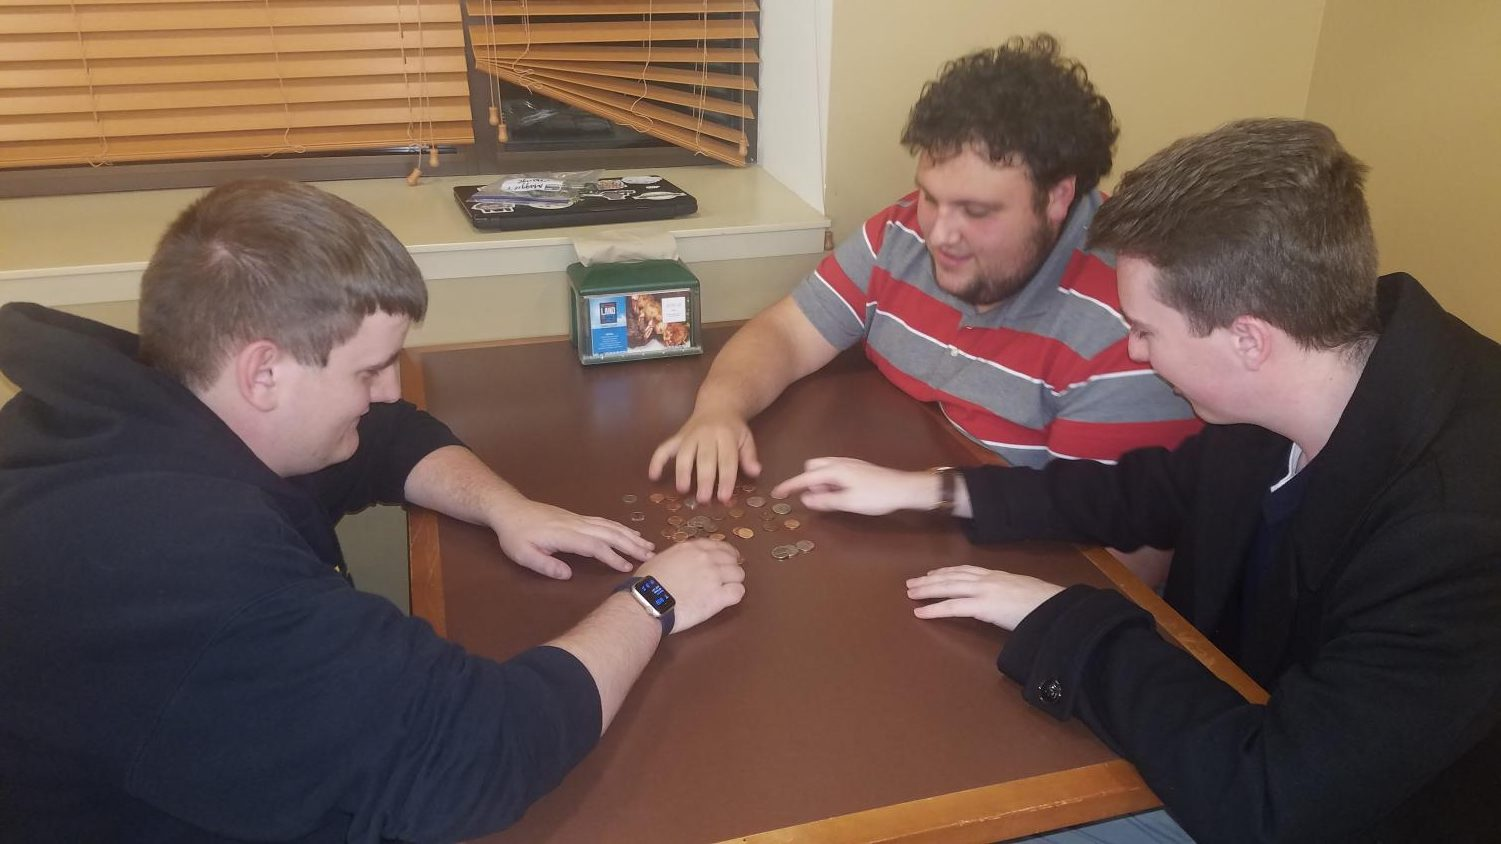 Michael Songer, a junior JUHAN fellow, helps sort coins for the Penny Wars competition with junior Daniel Mulvihill and senior Matthew Pollock in the Le Moyne Den on Oct 17.